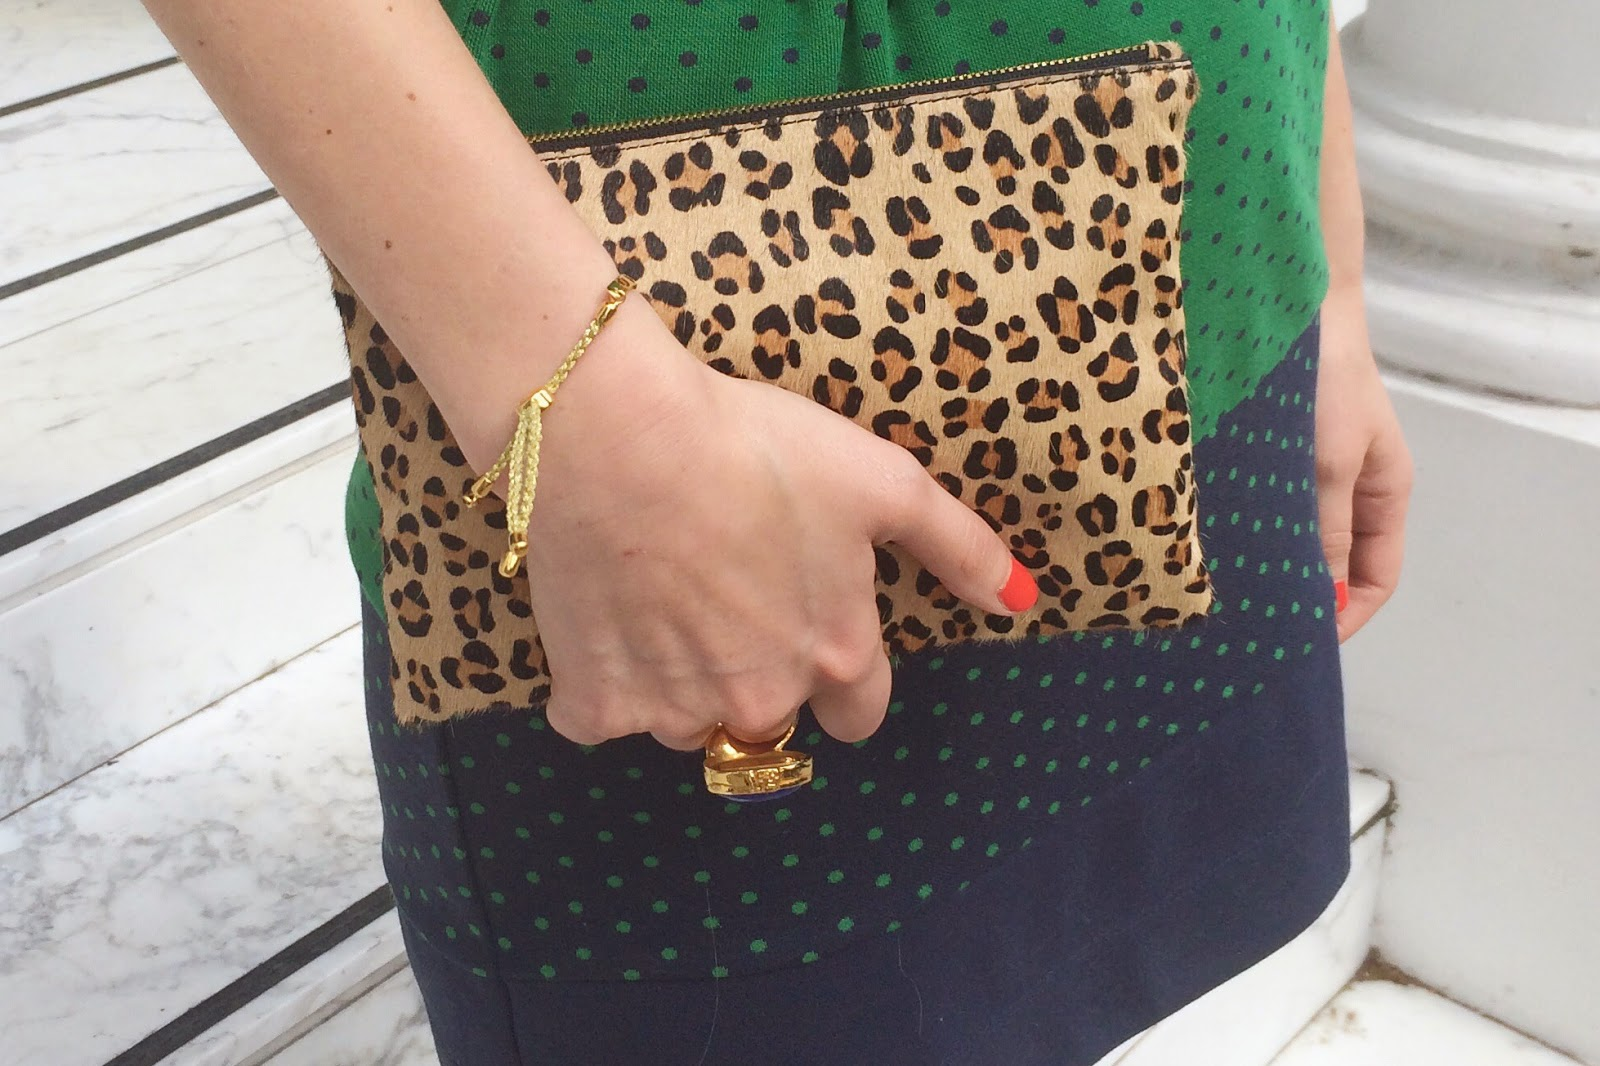 monica vinader, monica vinader fiji bracelet, j crew pouch, j crew leopard print clutch, house of fraser dress, green dress, t-shirt dress, blue and green dress